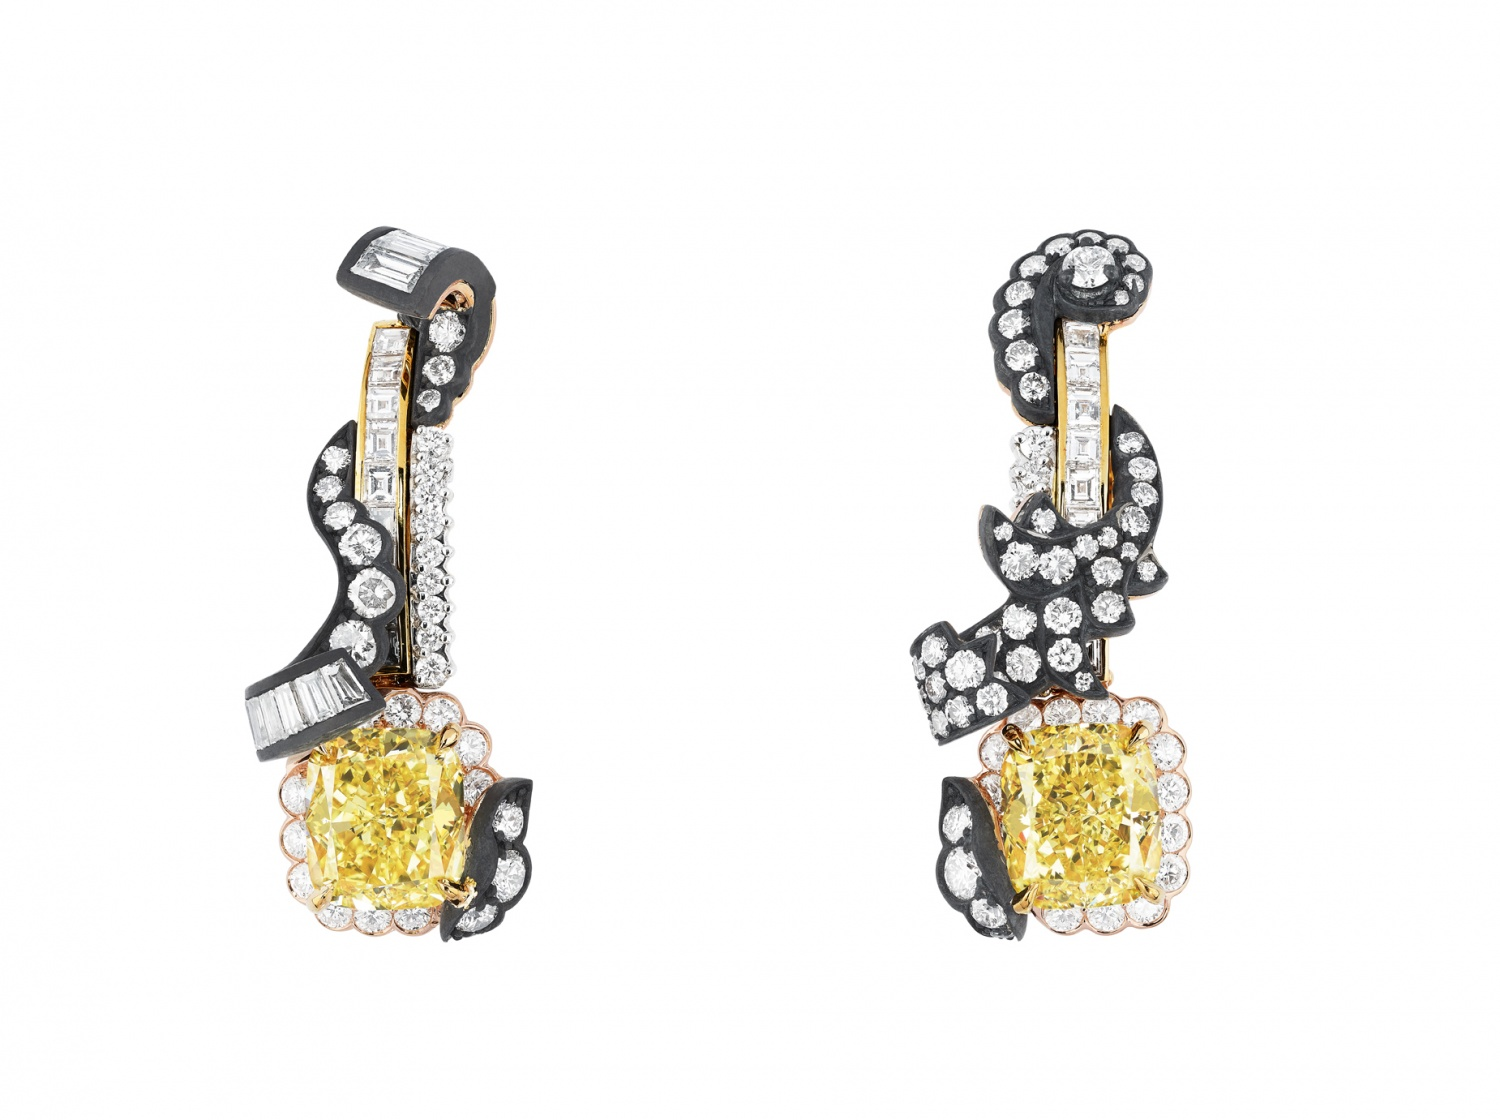 BOISERIE-DIAMANT-JAUNE-EARRINGS